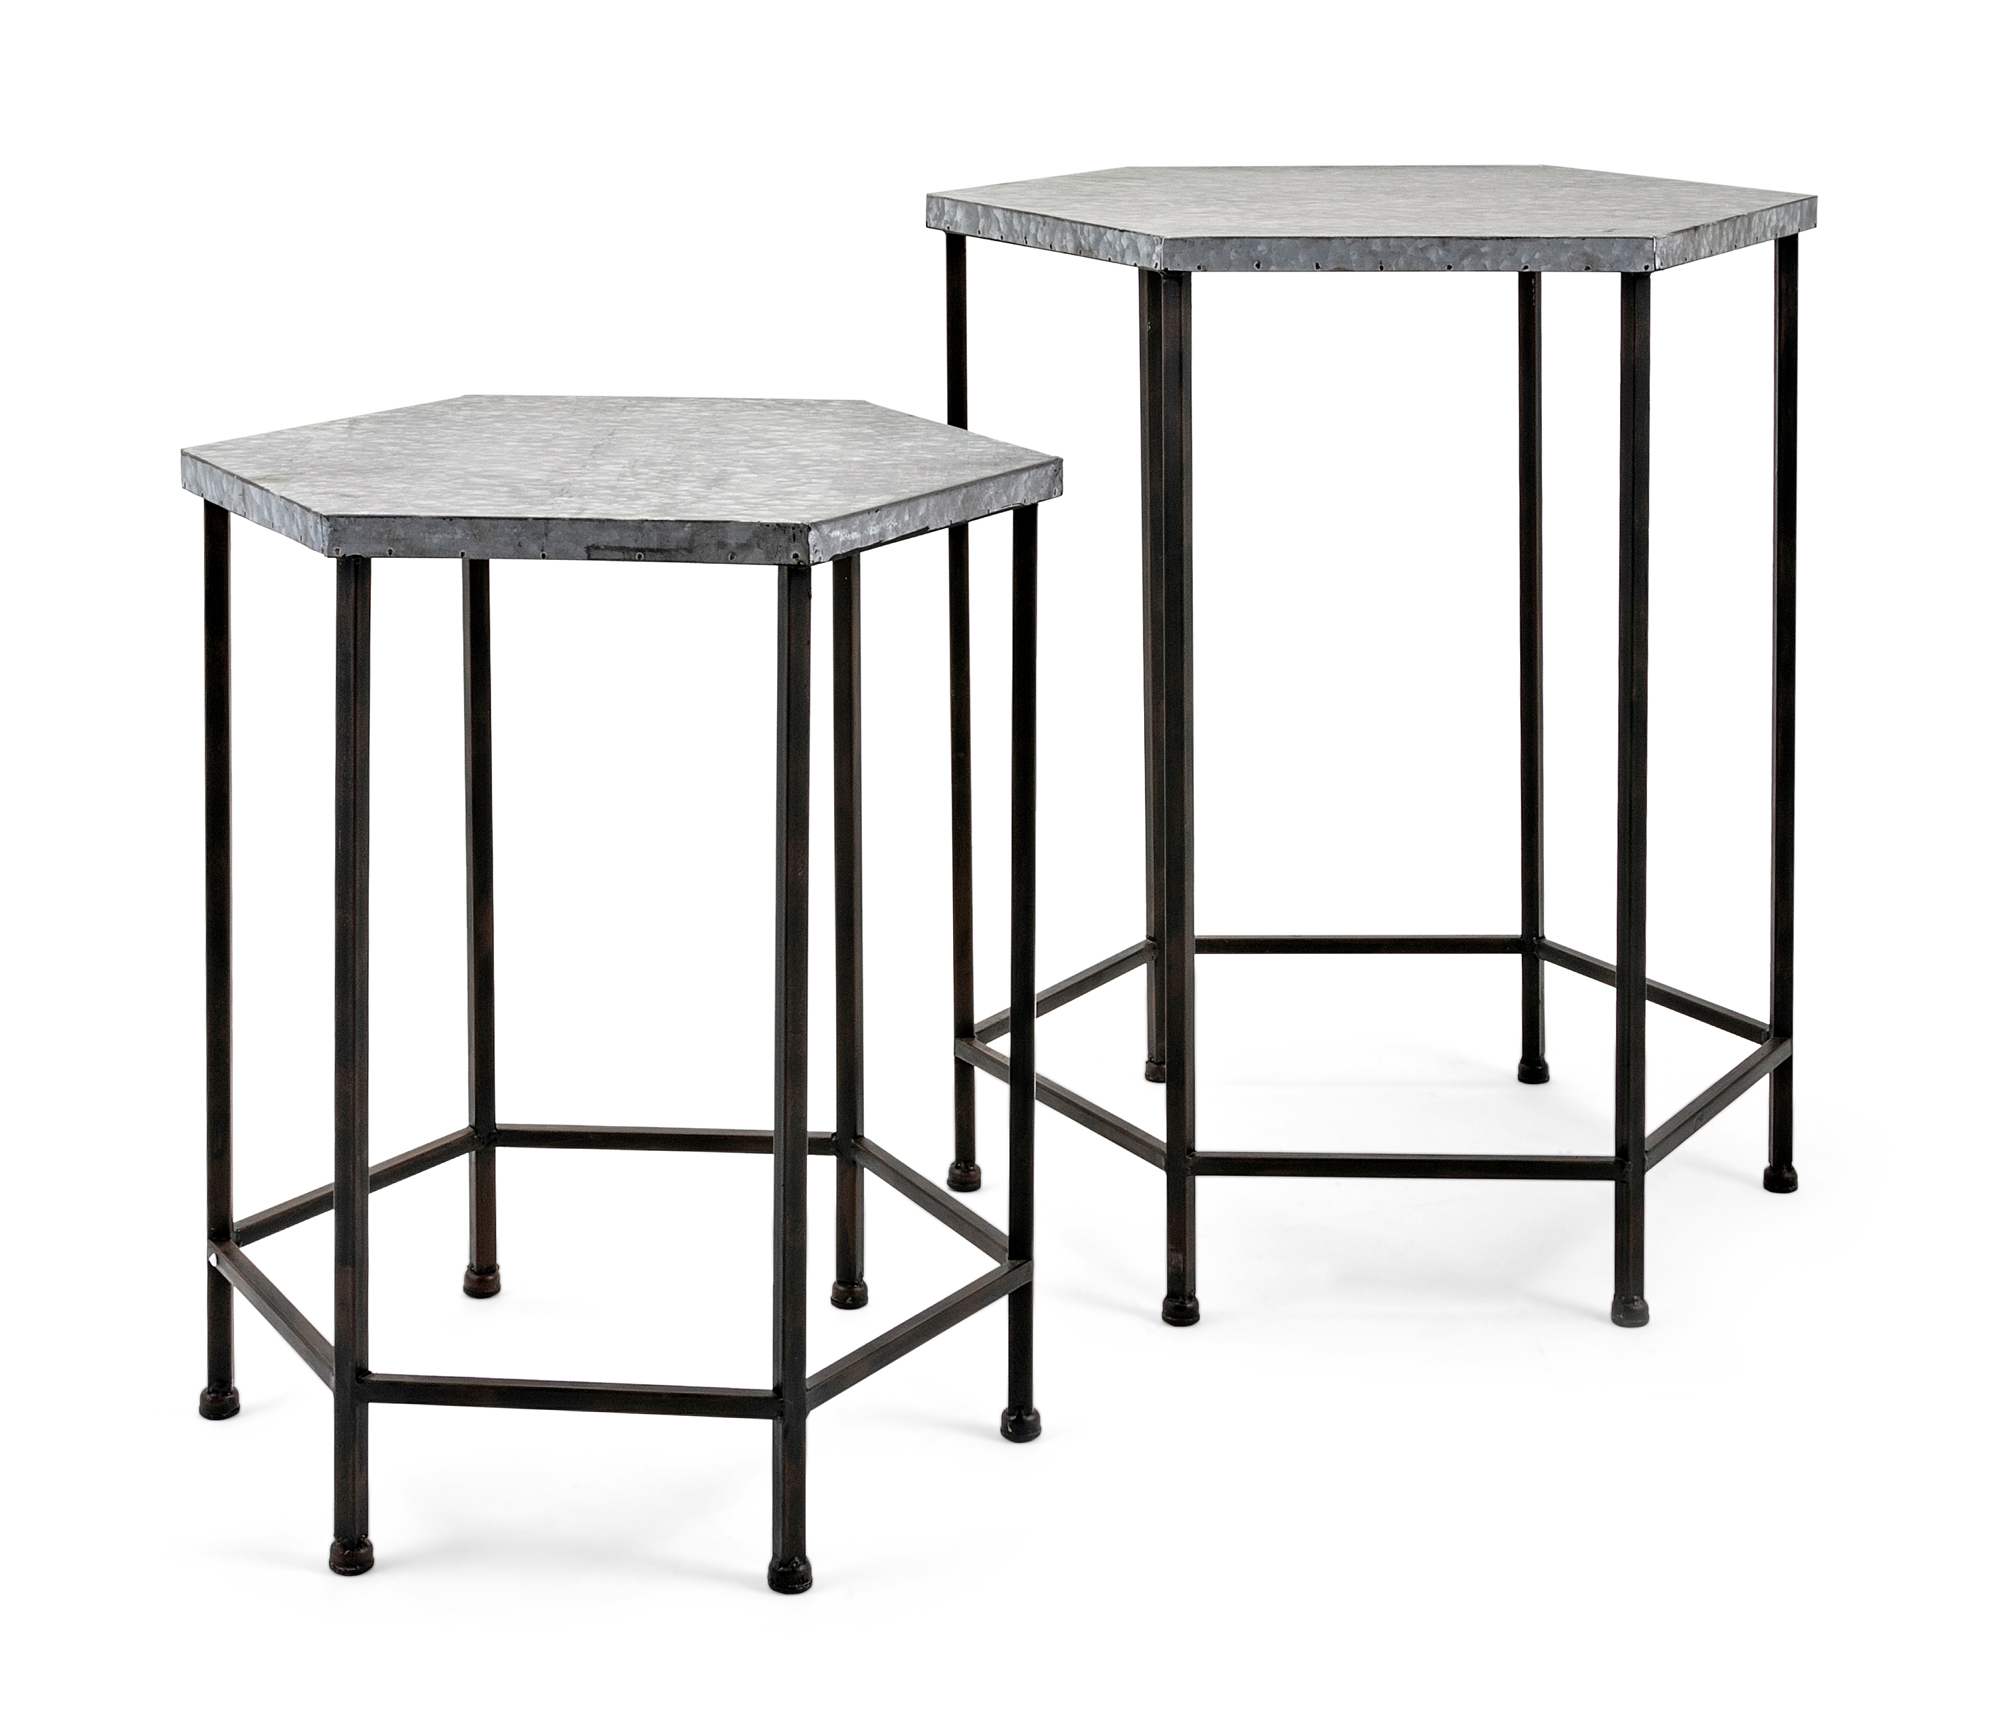 imax set kendan galvanized accent tables gray finish metal table loading modern legs outdoor nic black pedestal side carpet transition piece cast aluminum end boston furniture